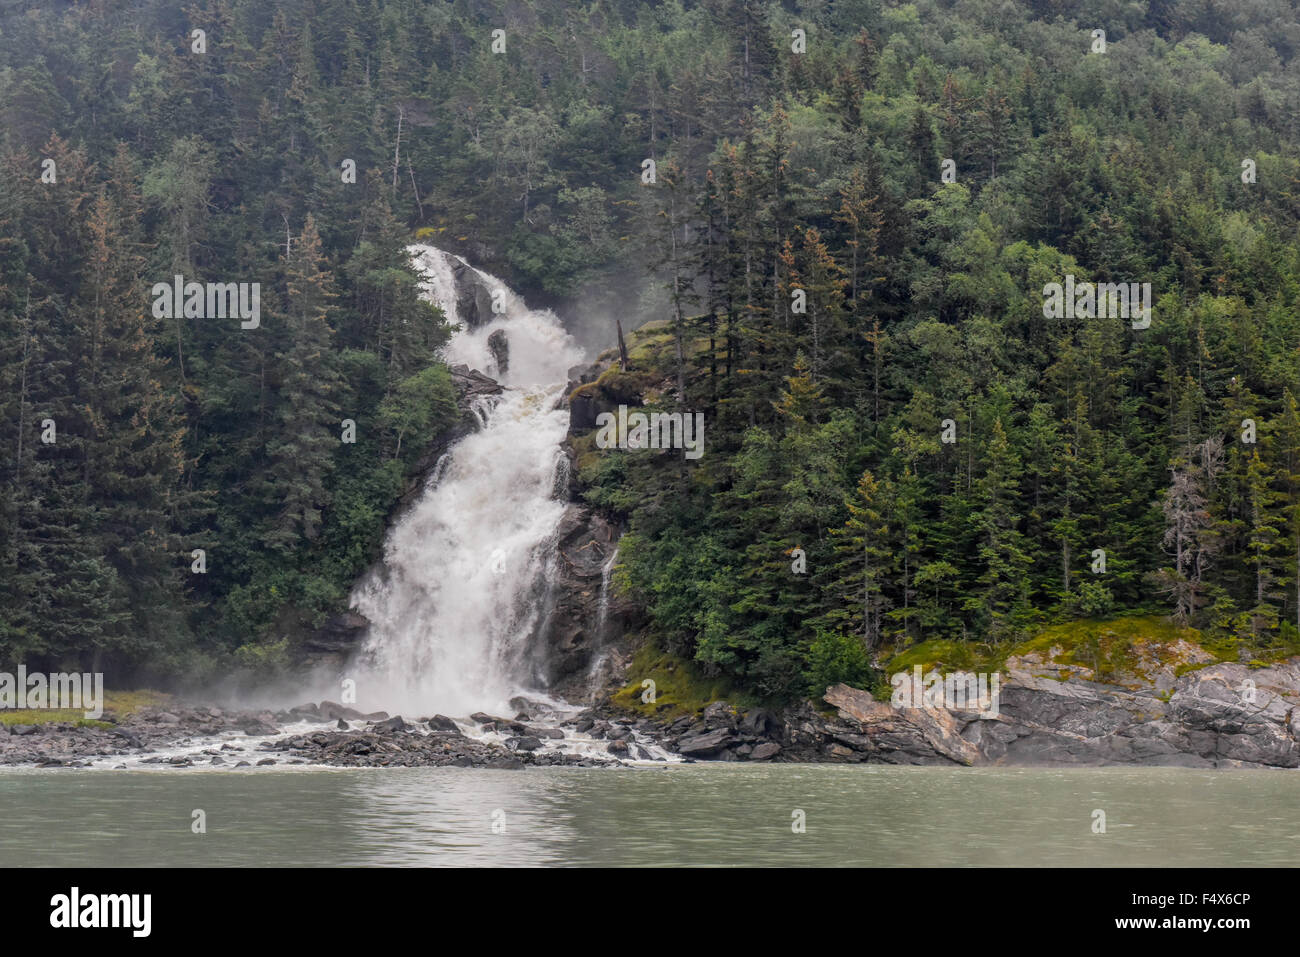 A scenic mountainside waterfall crashes through a forest of pine trees near Skagway Alaska | Lynn Canal fjord cruise - Stock Image